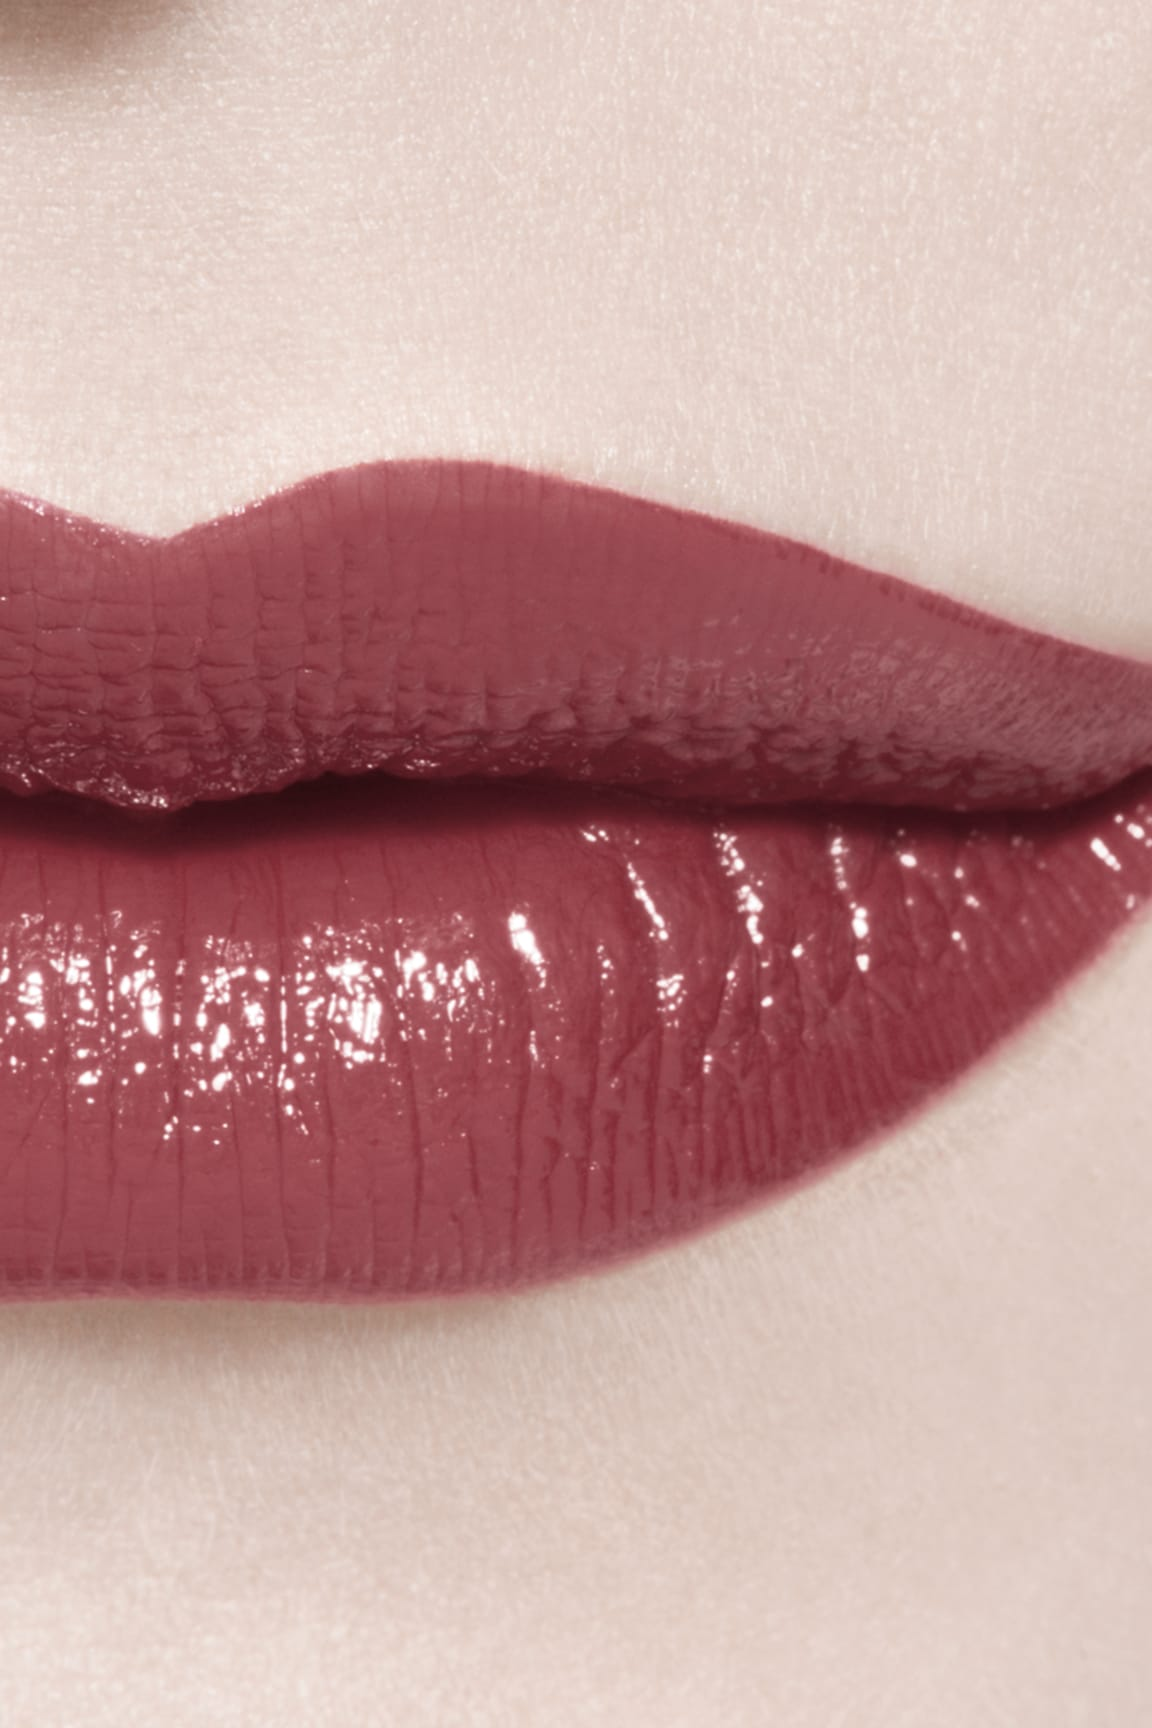 Application makeup visual 3 - ROUGE COCO BLOOM 118 - RADIANT